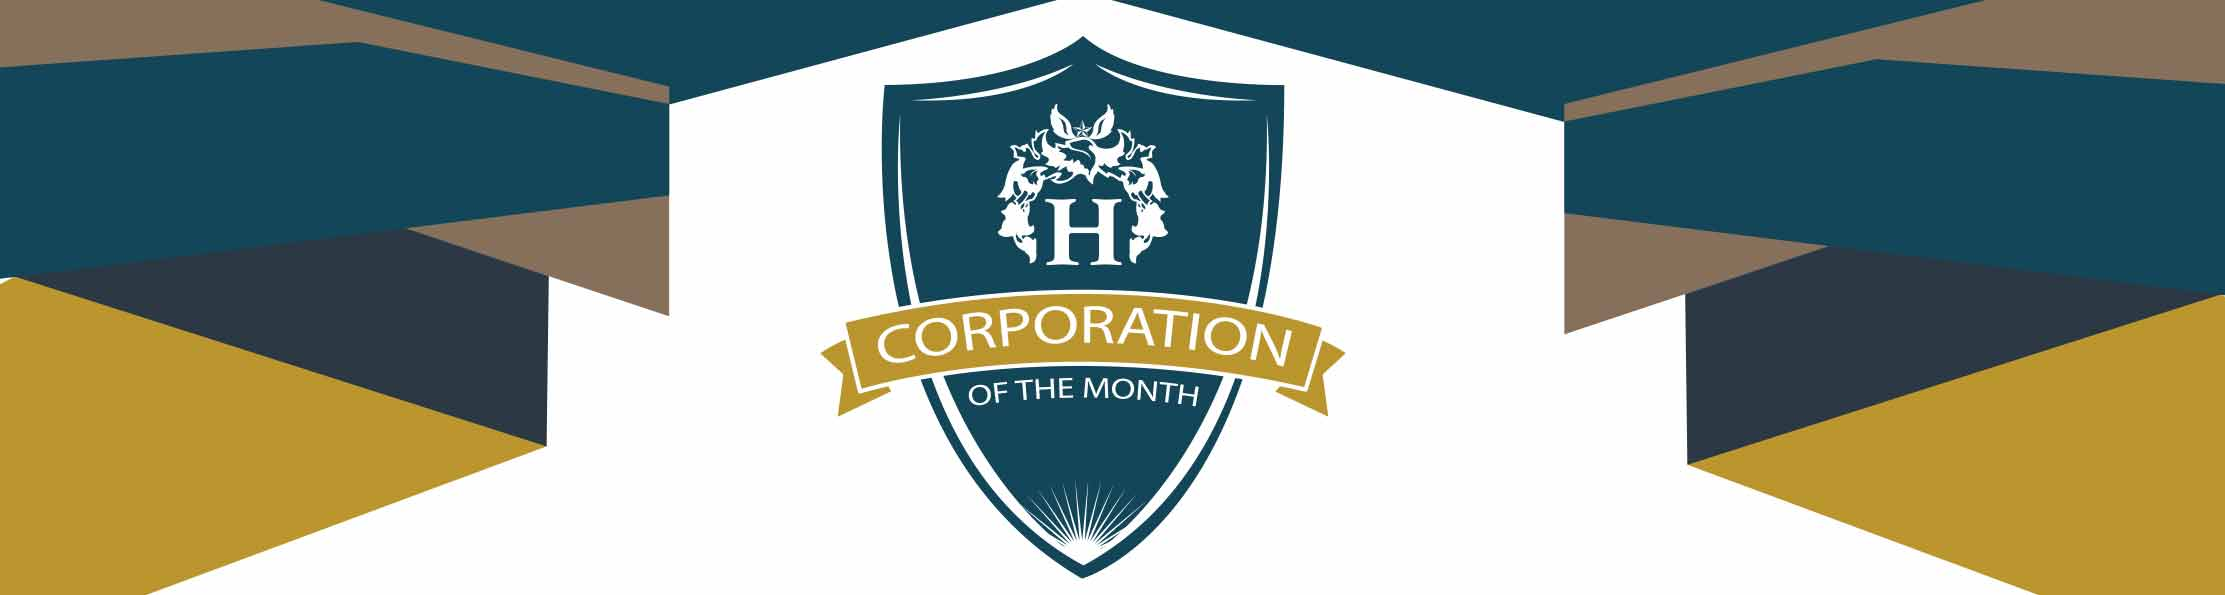 Heidel House Corporation of the month, green lake wi, heidel house resort & spa